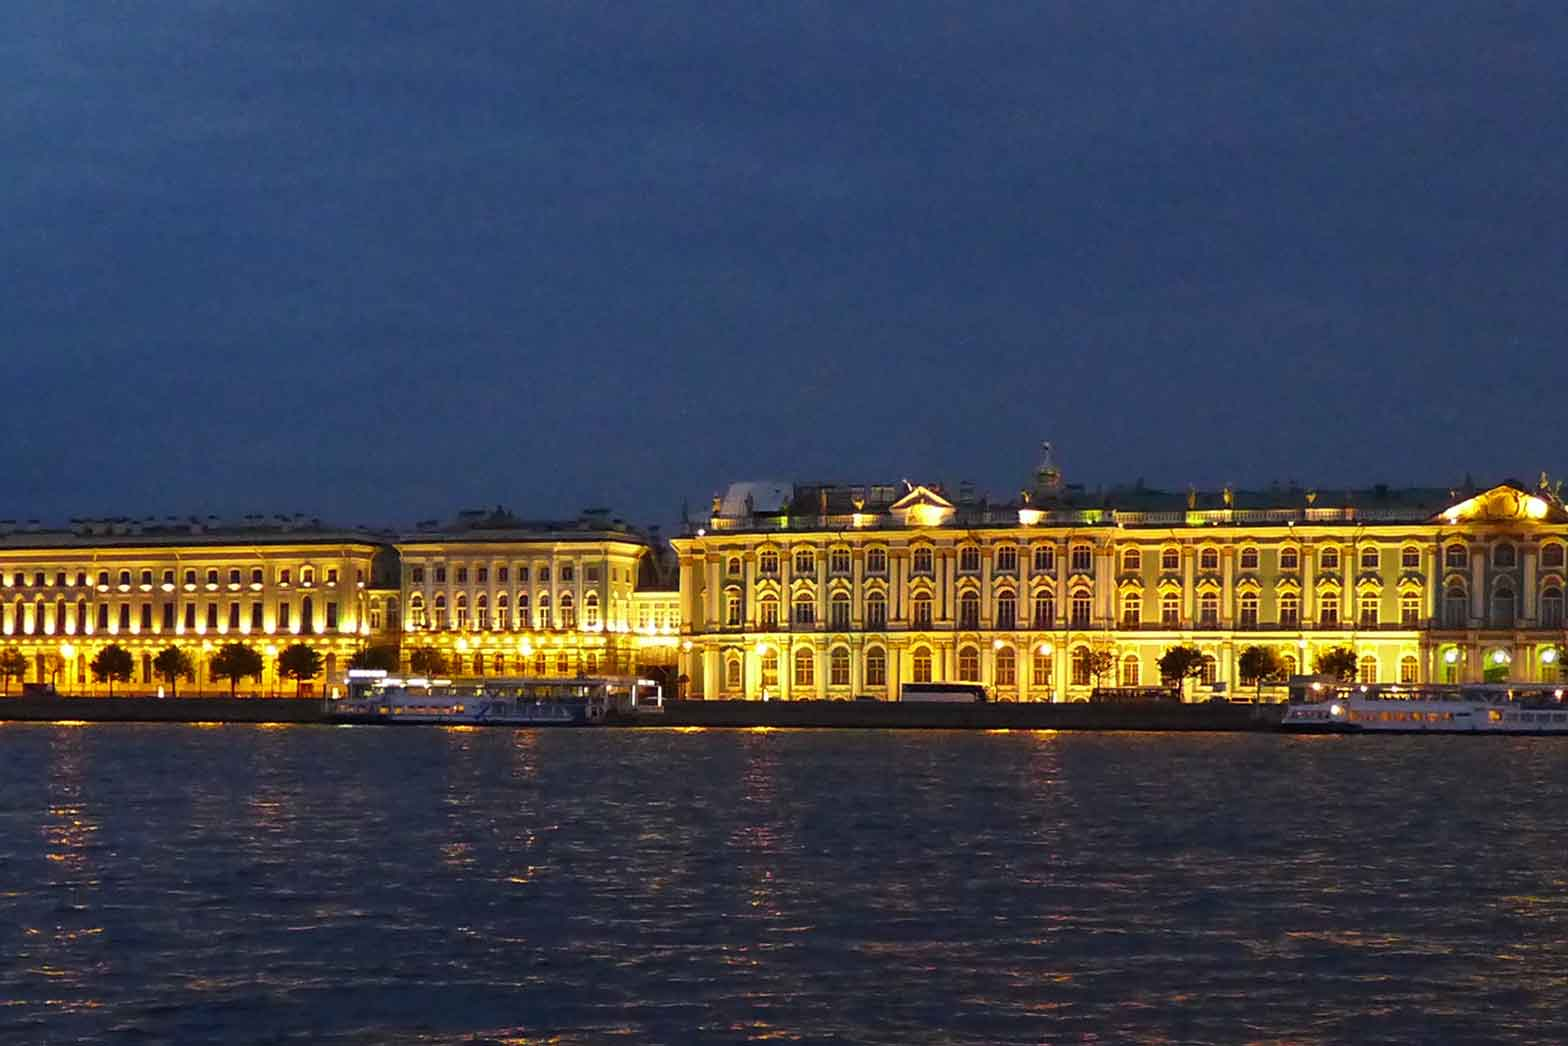 Hermitage at night